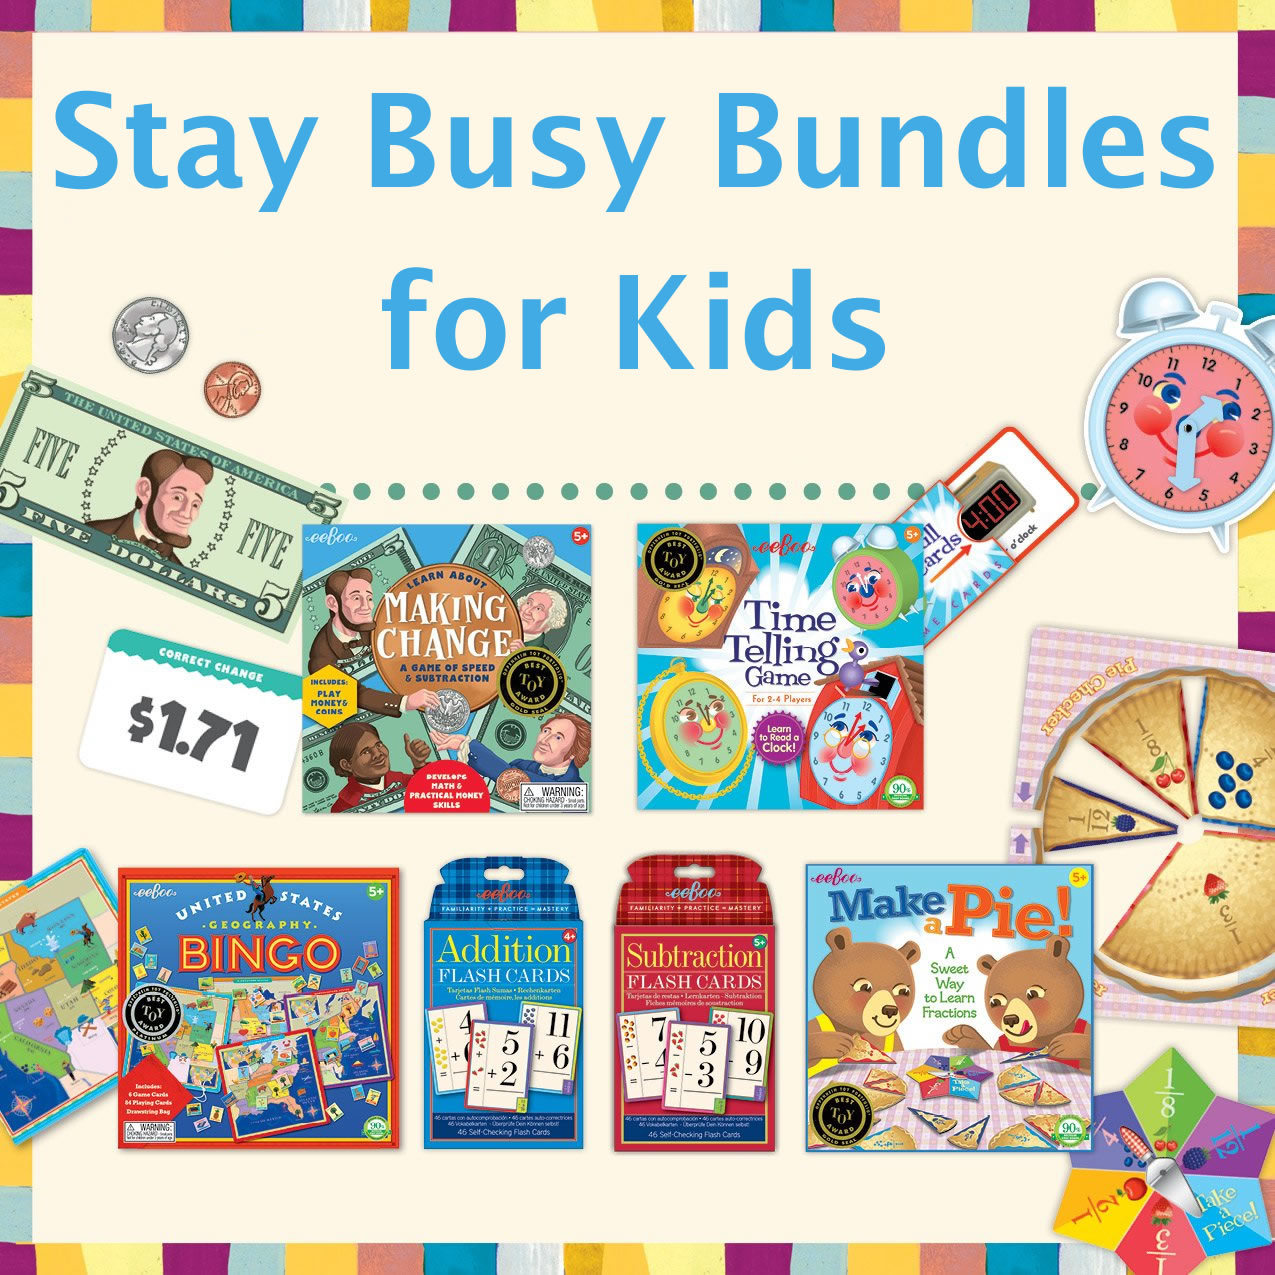 Stay Busy Bundles for Kids